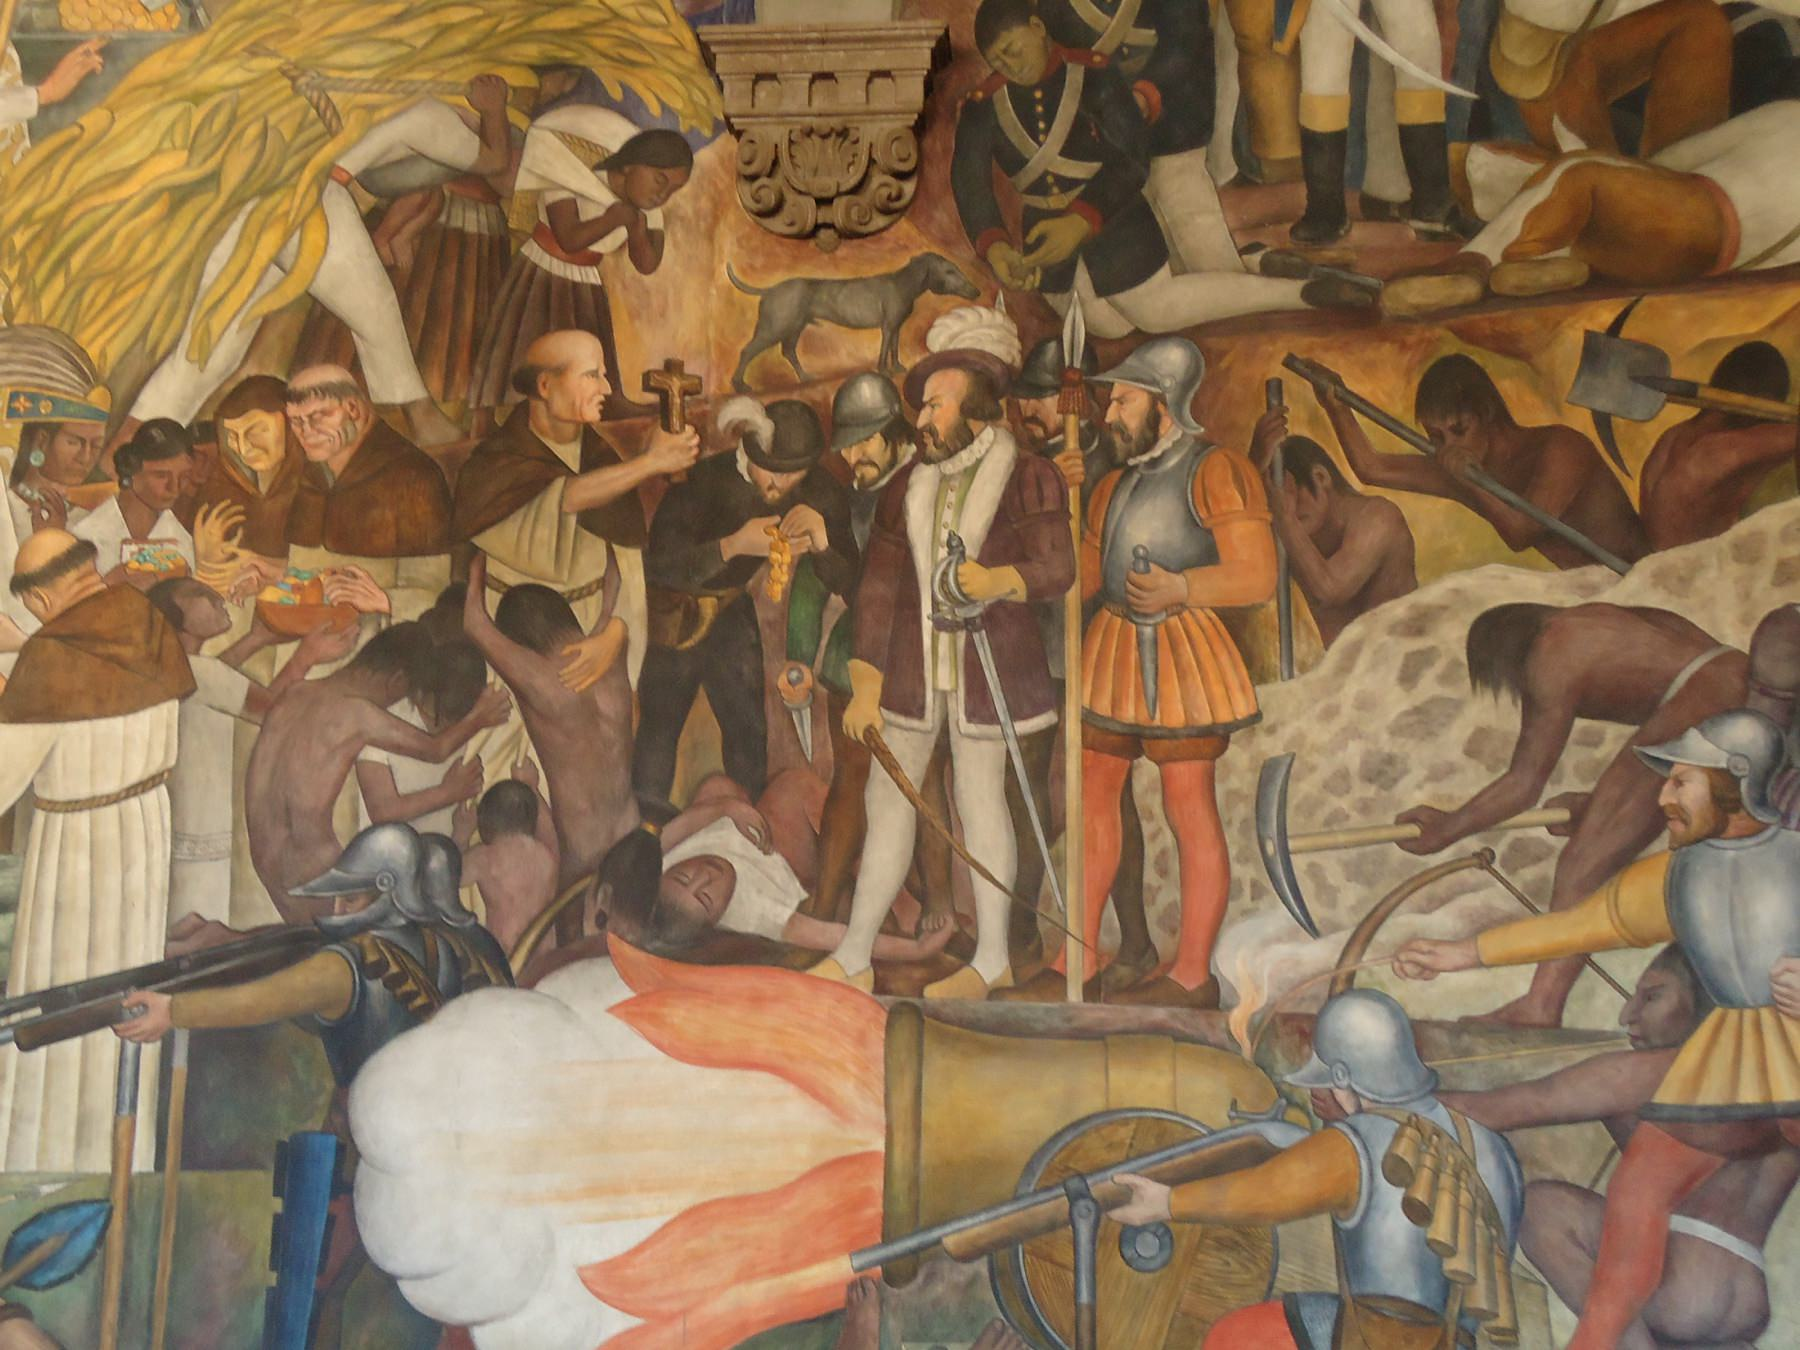 Rivera_Mural_Palacio_Nacional_Mexico_from_Conquer_to_Present_Detail-1800x1350